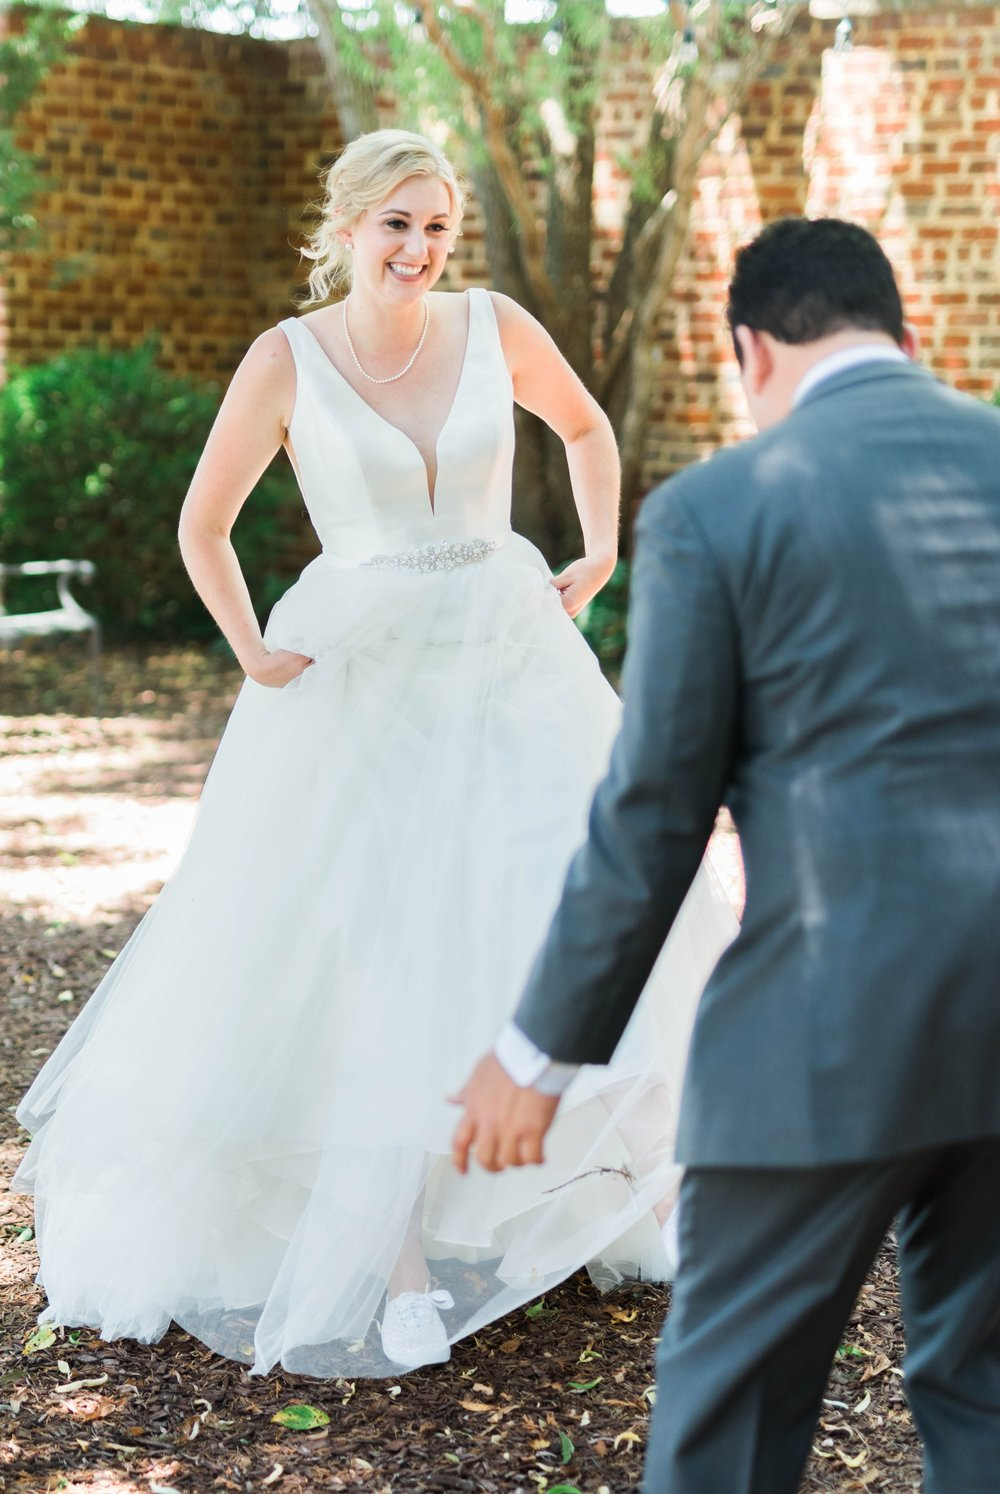 westmanorestate_entwinedevents_lynchburgweddingphotographer_Virginiaweddingphotographer_kateyam 27.jpg